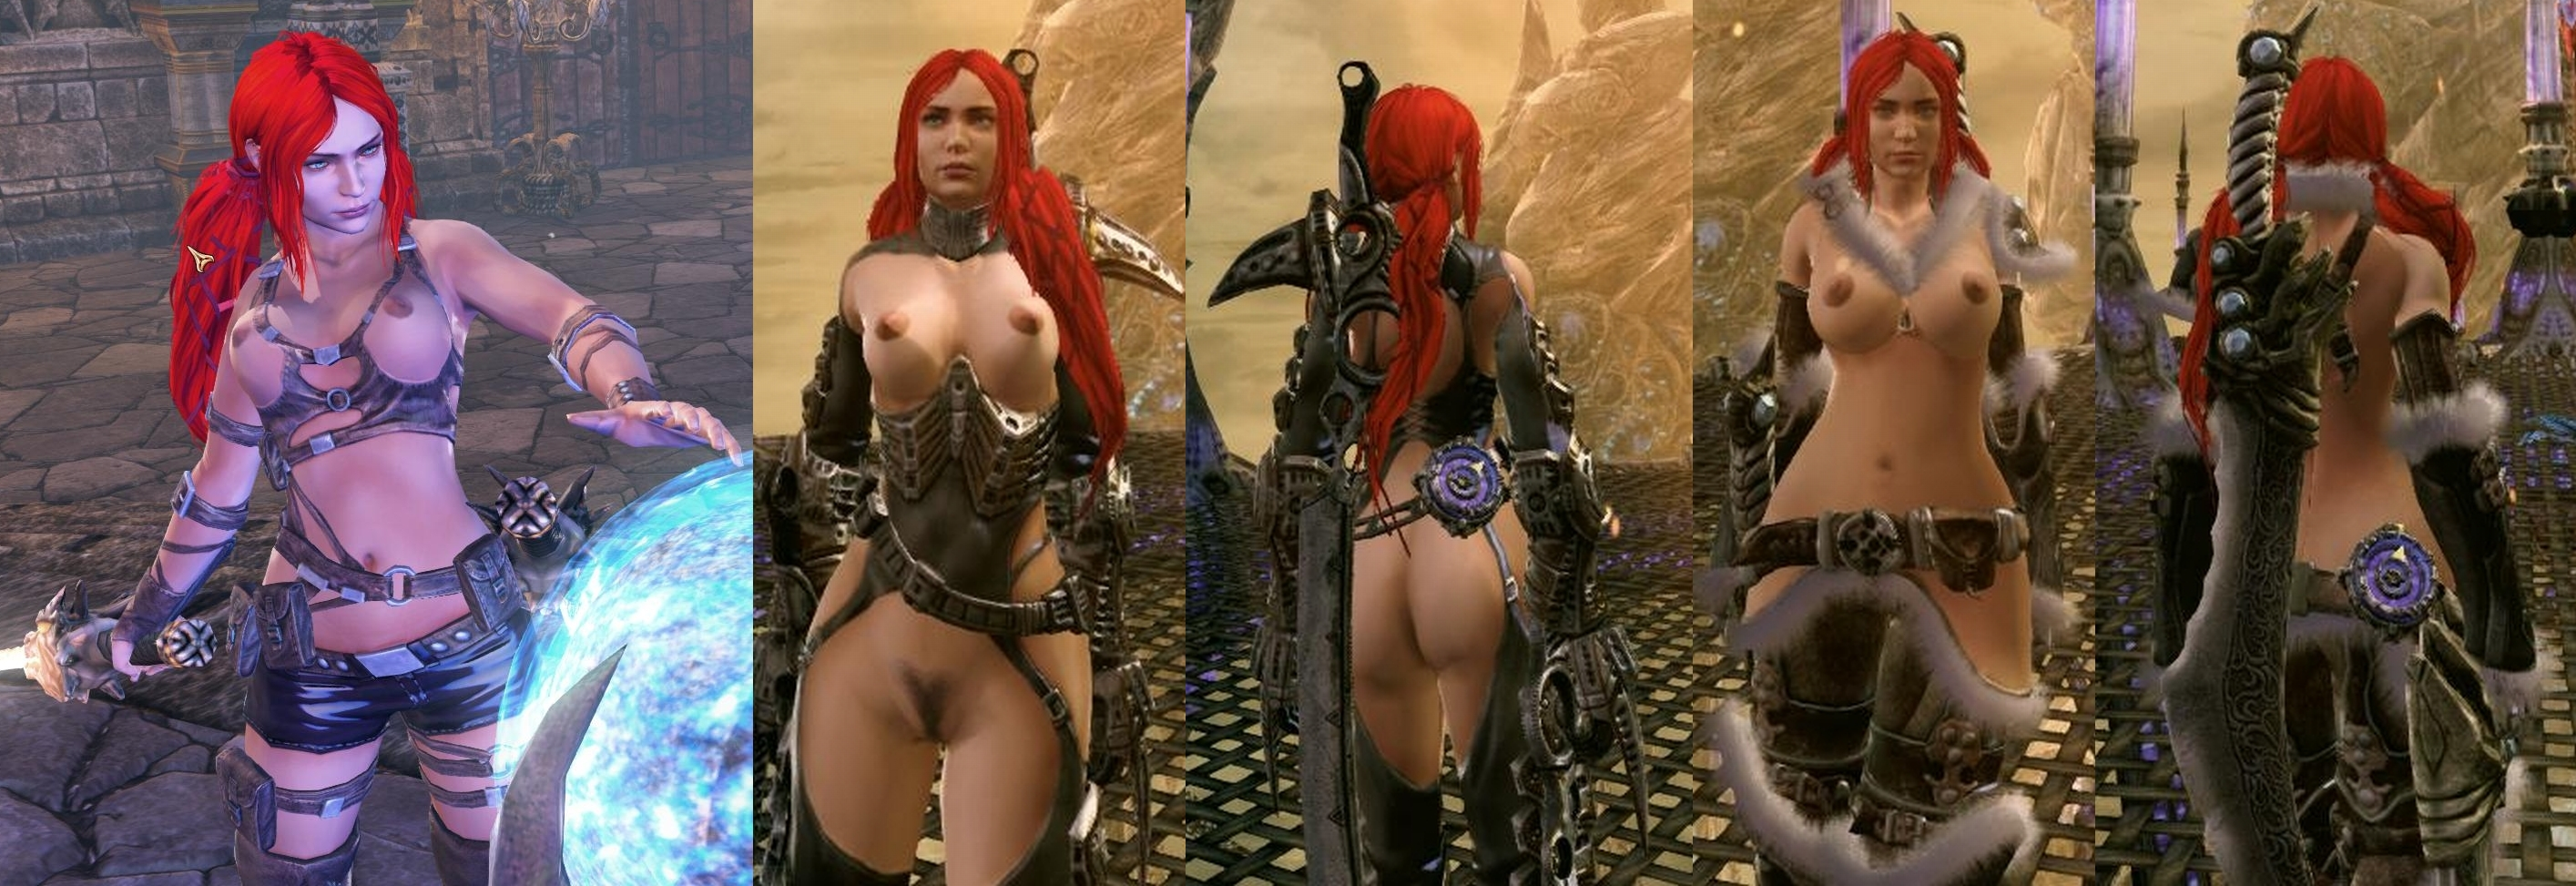 Dark blood nude pc gameplay sexy gallery